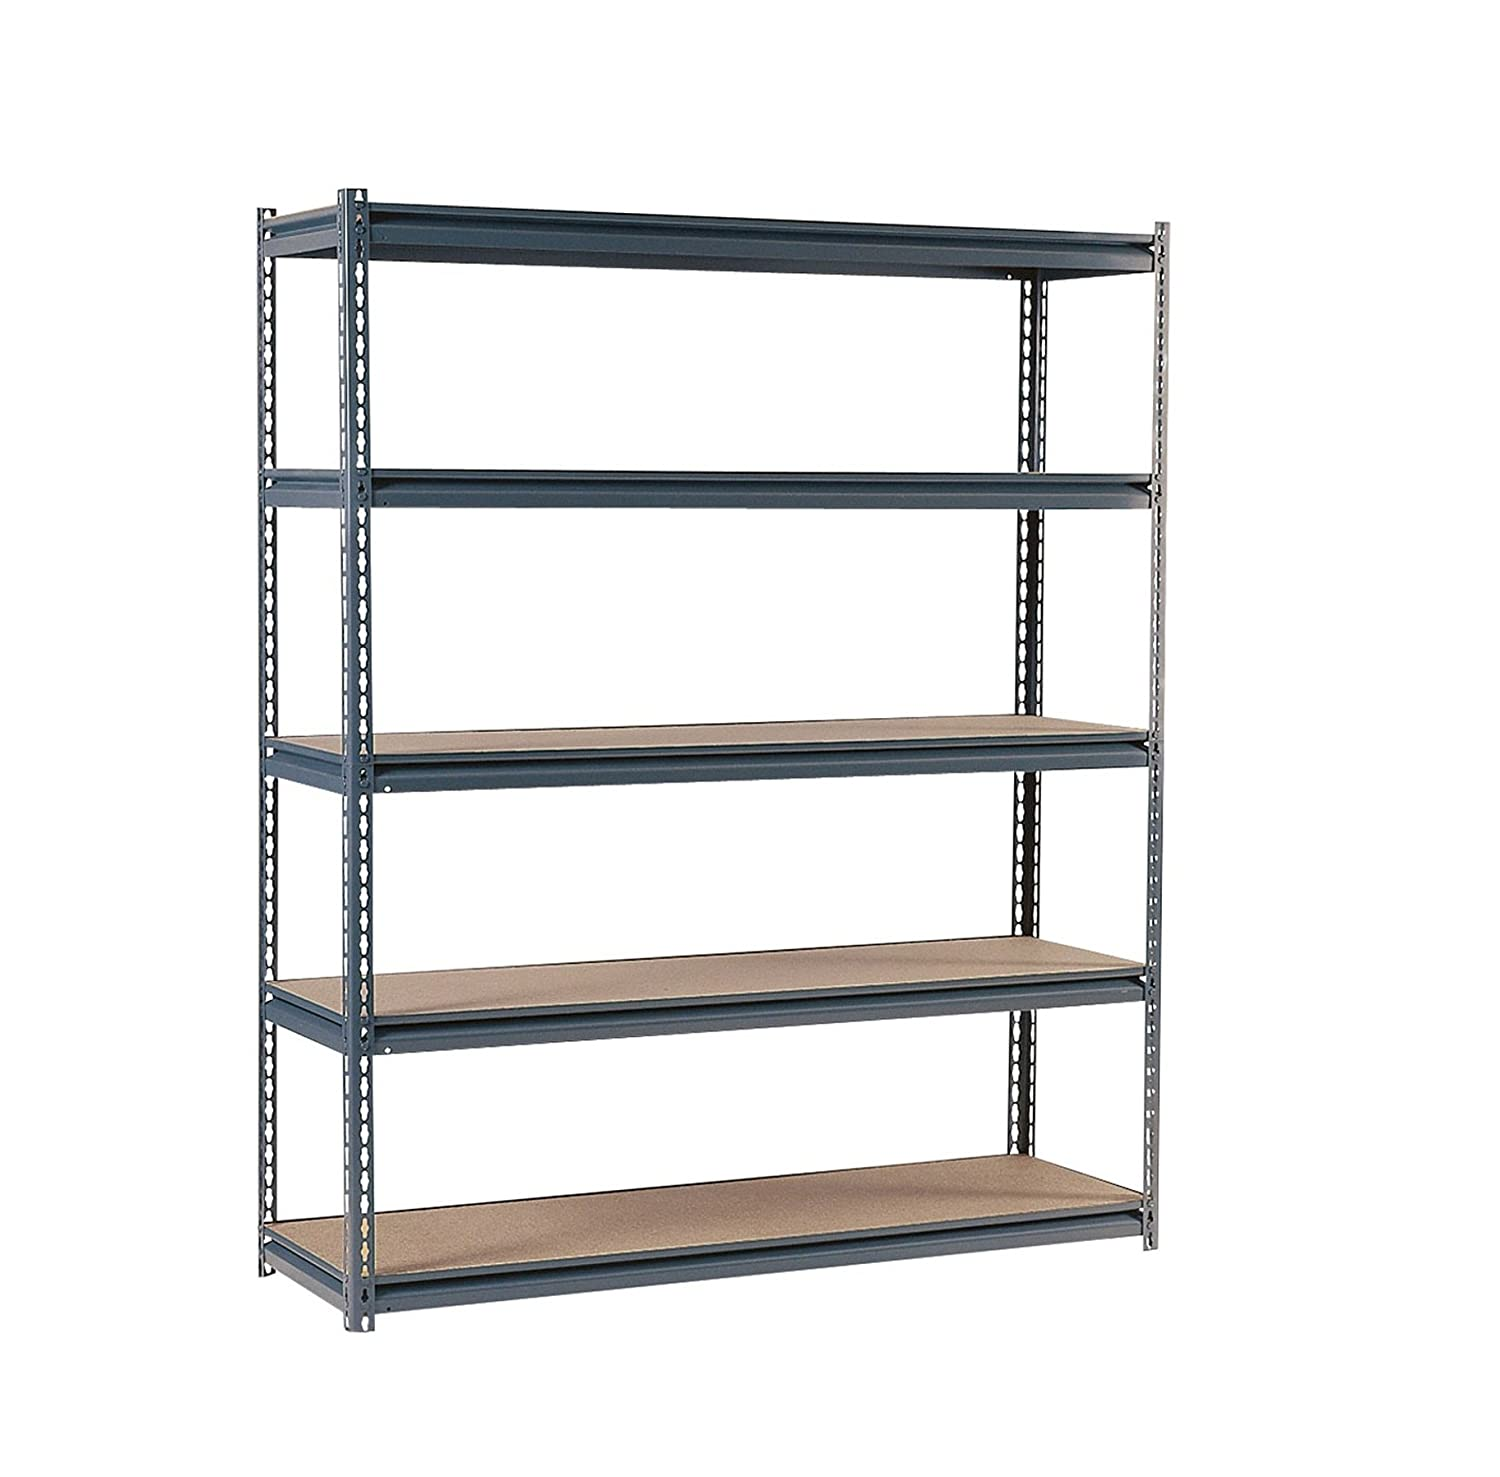 industrial storage rack pallet saladinos and cold fresno shelving ca racks